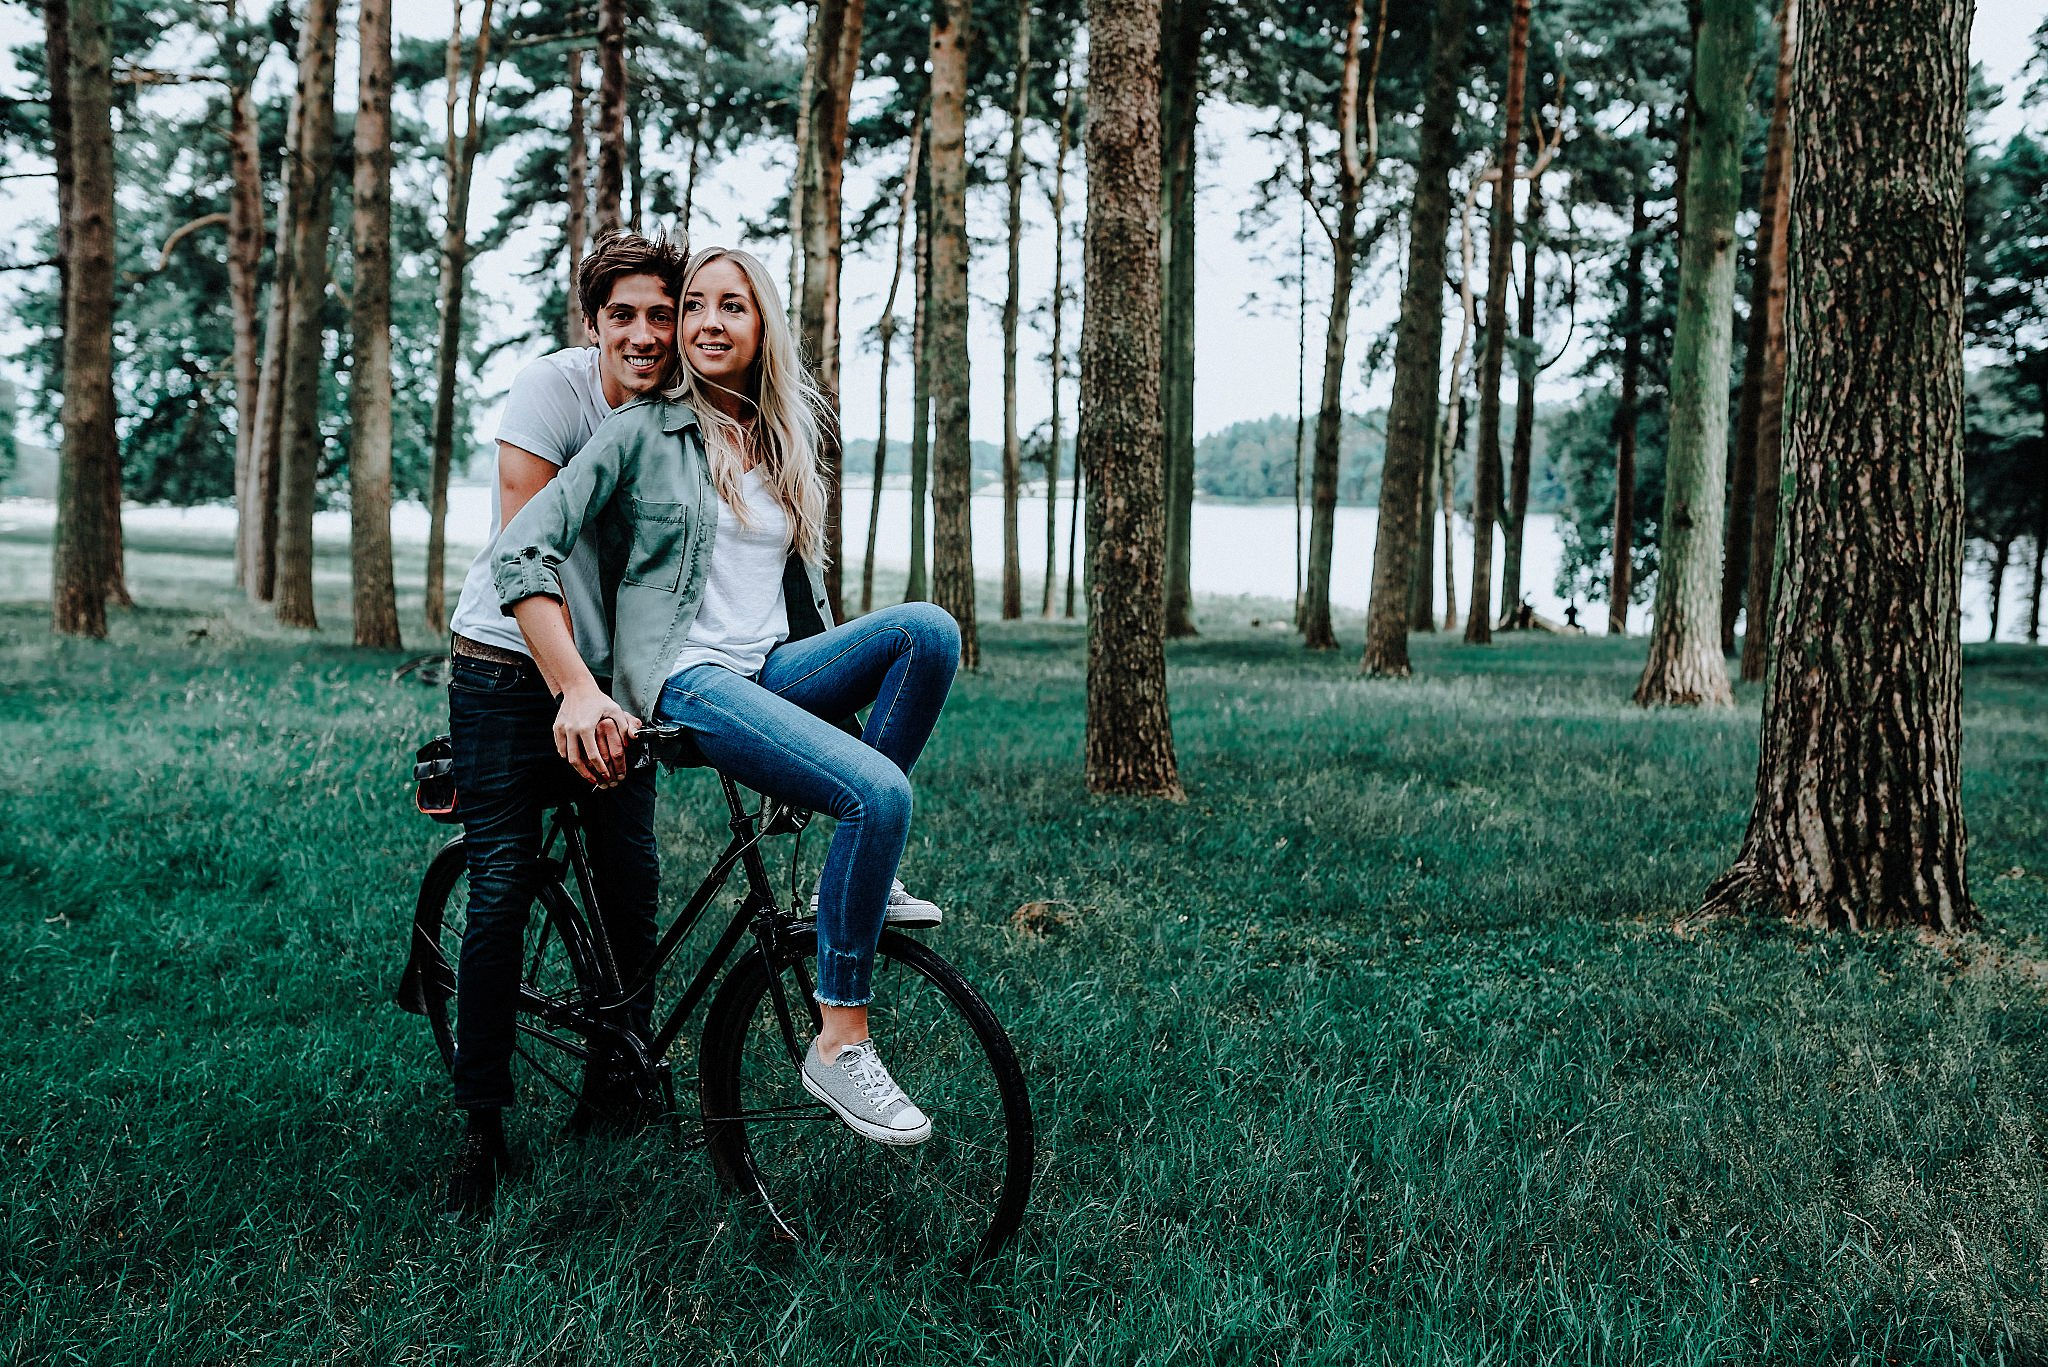 Lauren & Christopher smiling on a vintage bike in Tatton Park, Cheshire